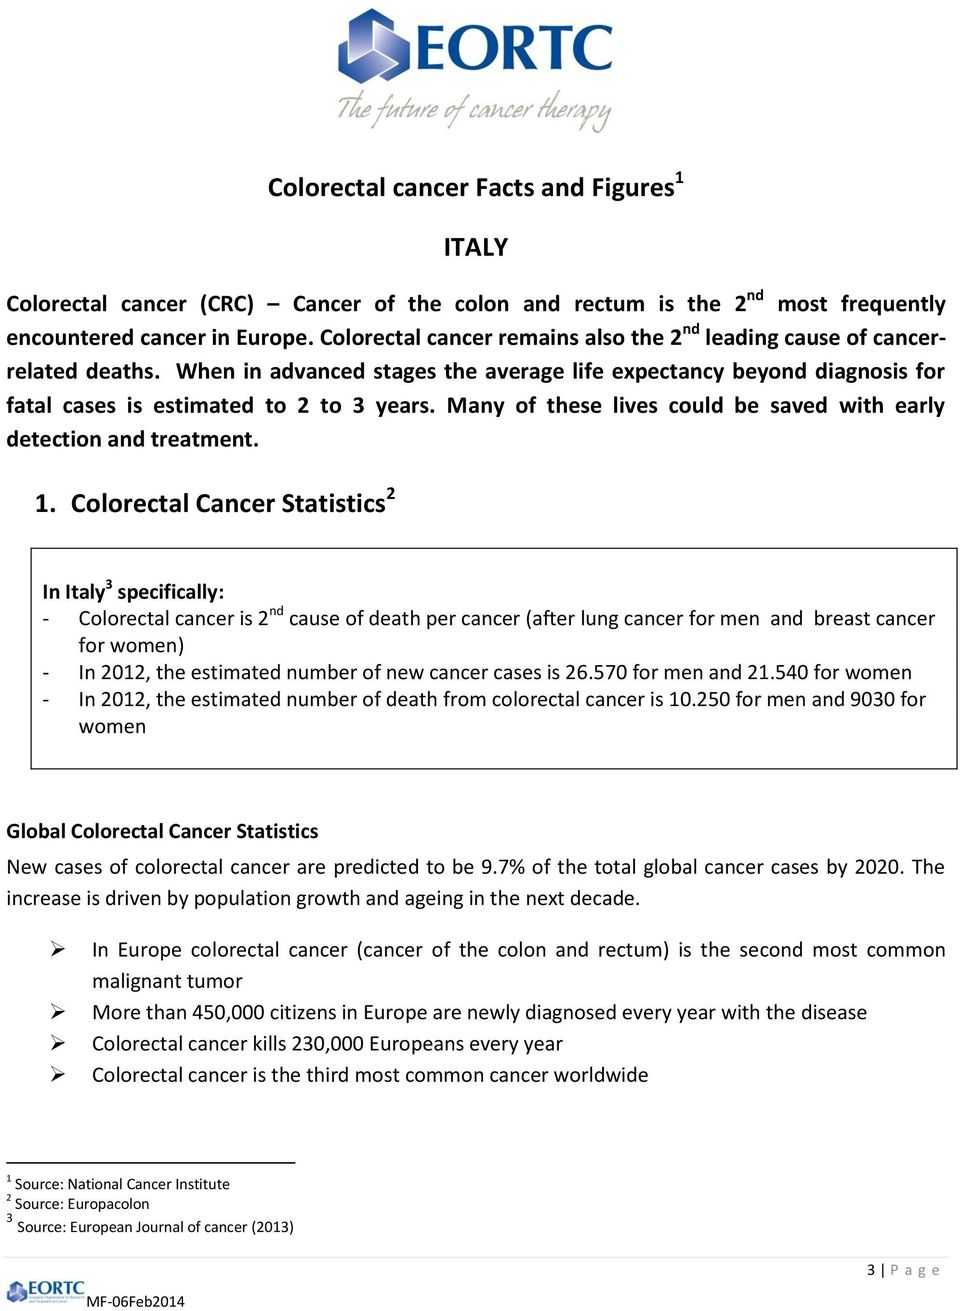 Colorectal Cancer Facts and Figures In support of the